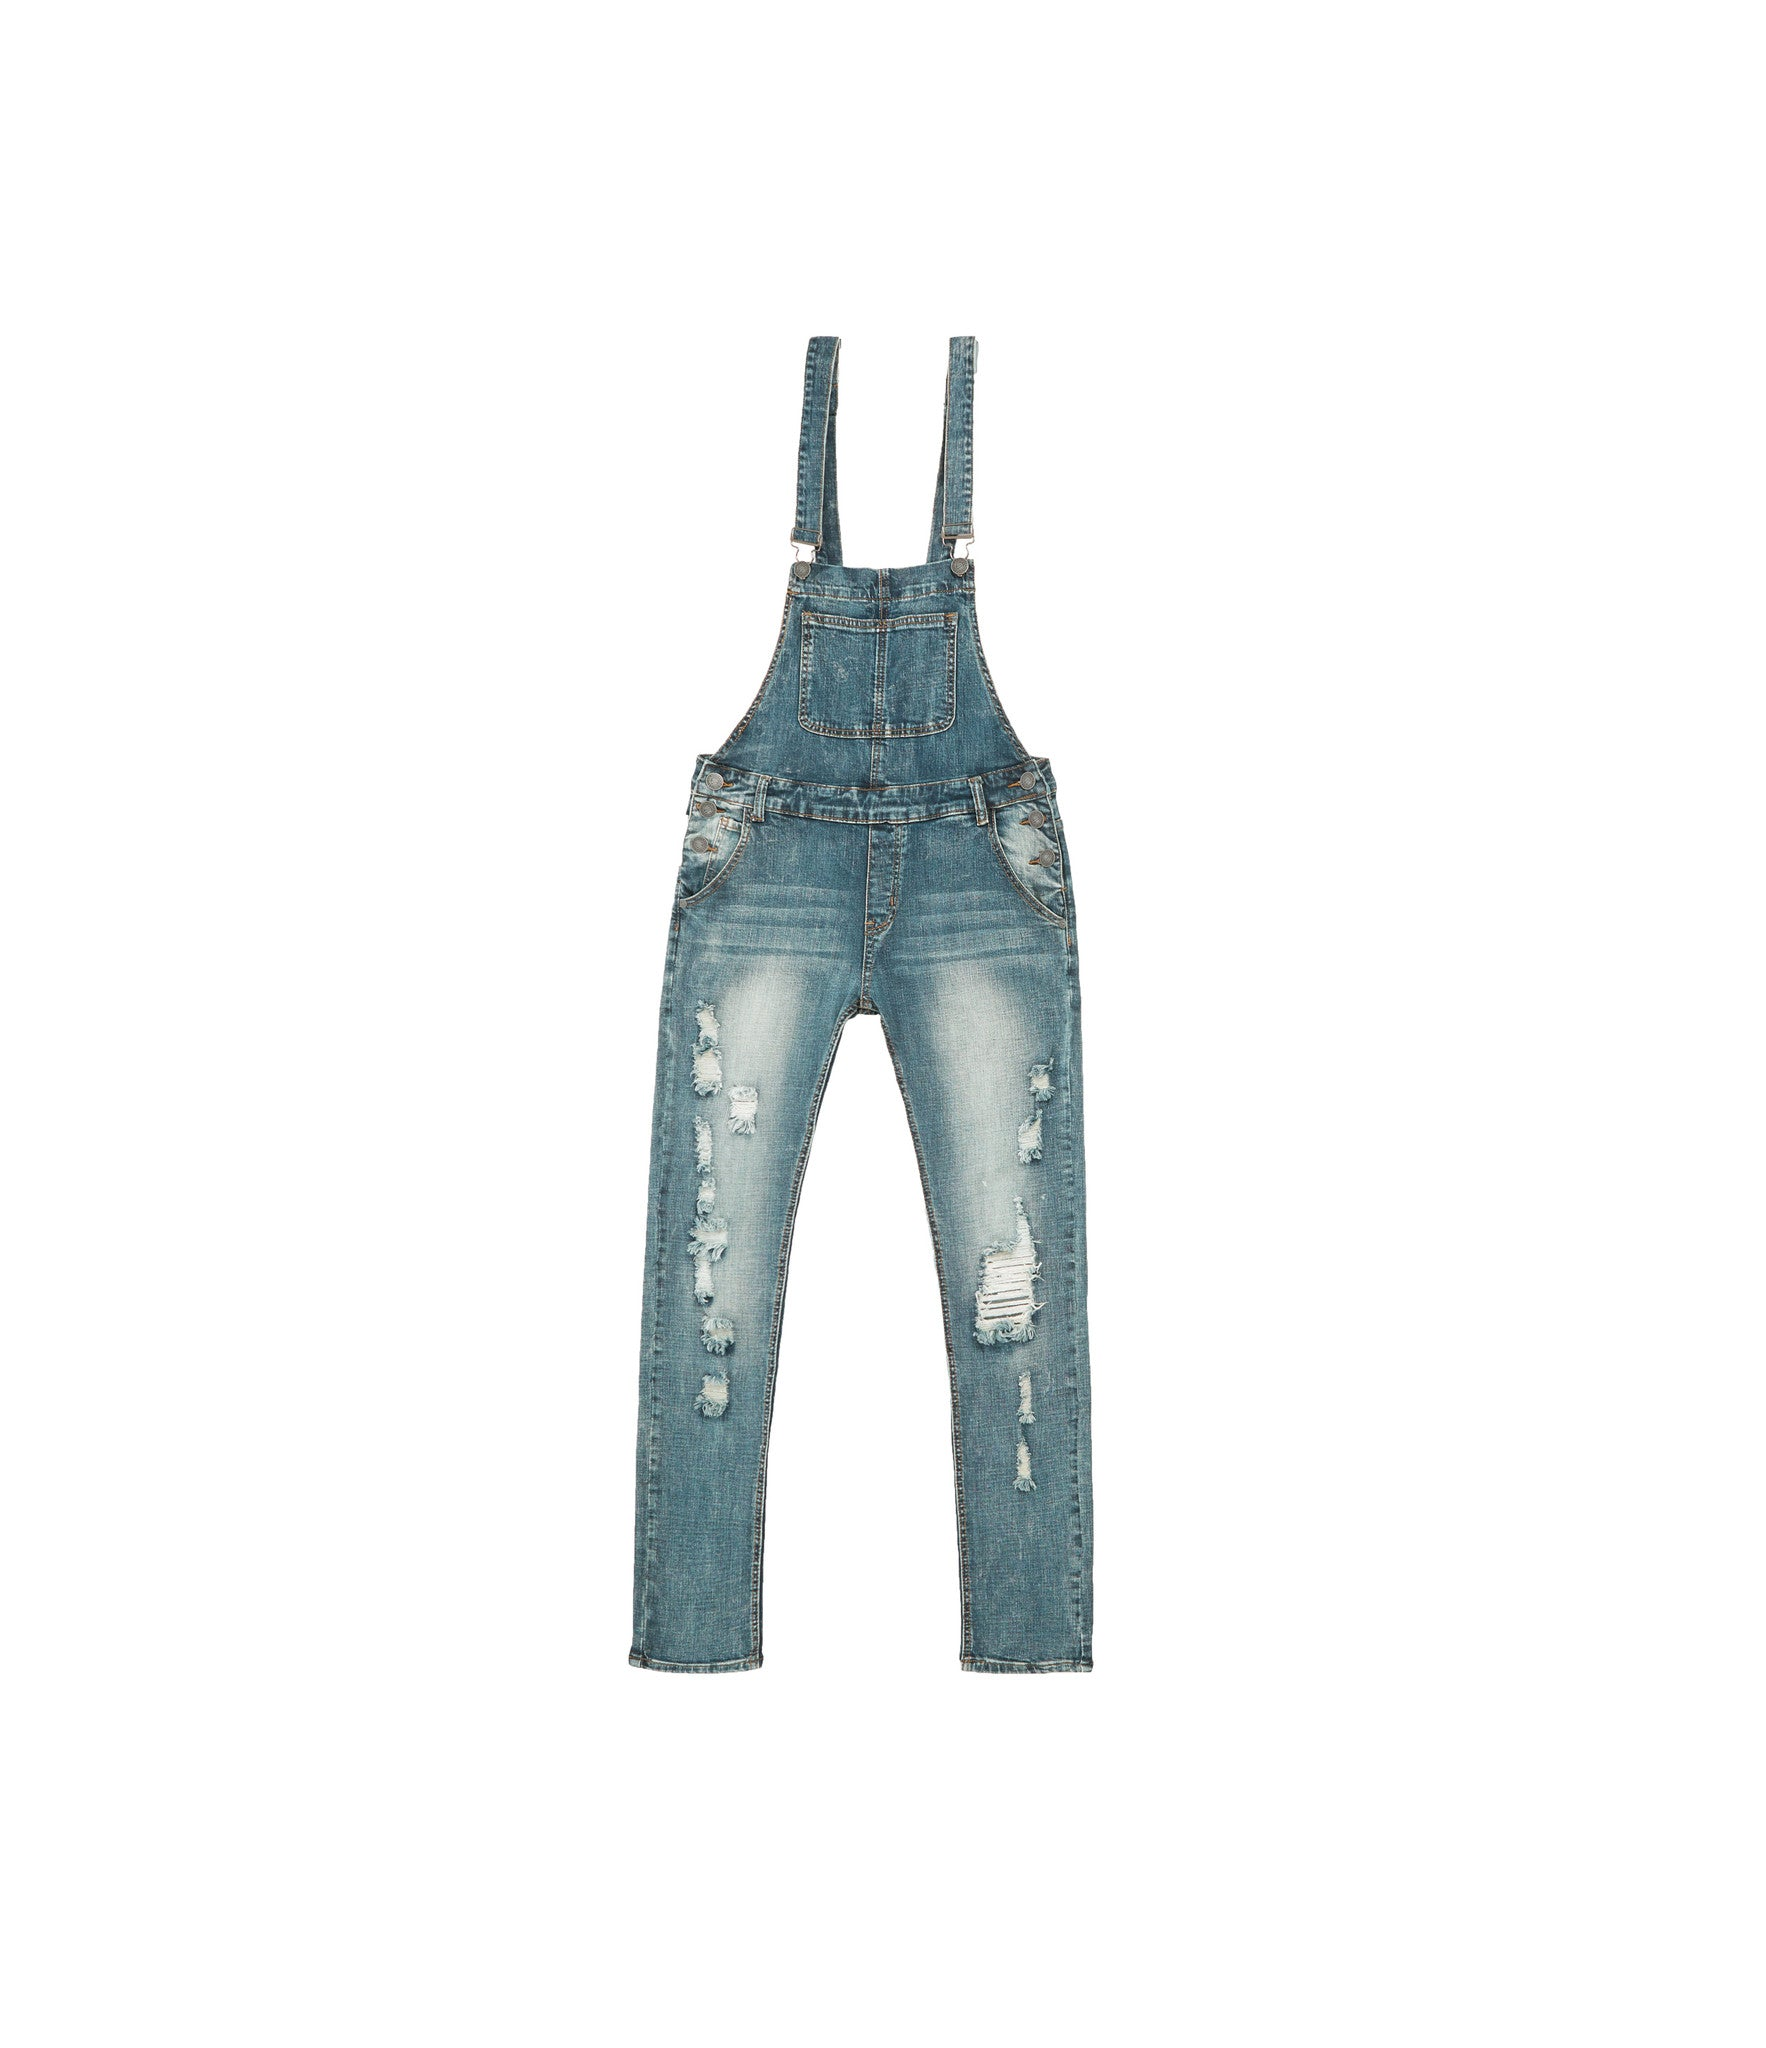 JN181 Distressed Stone Wash Dungaree Denim - Mid Blue - underated london - underatedco - 1